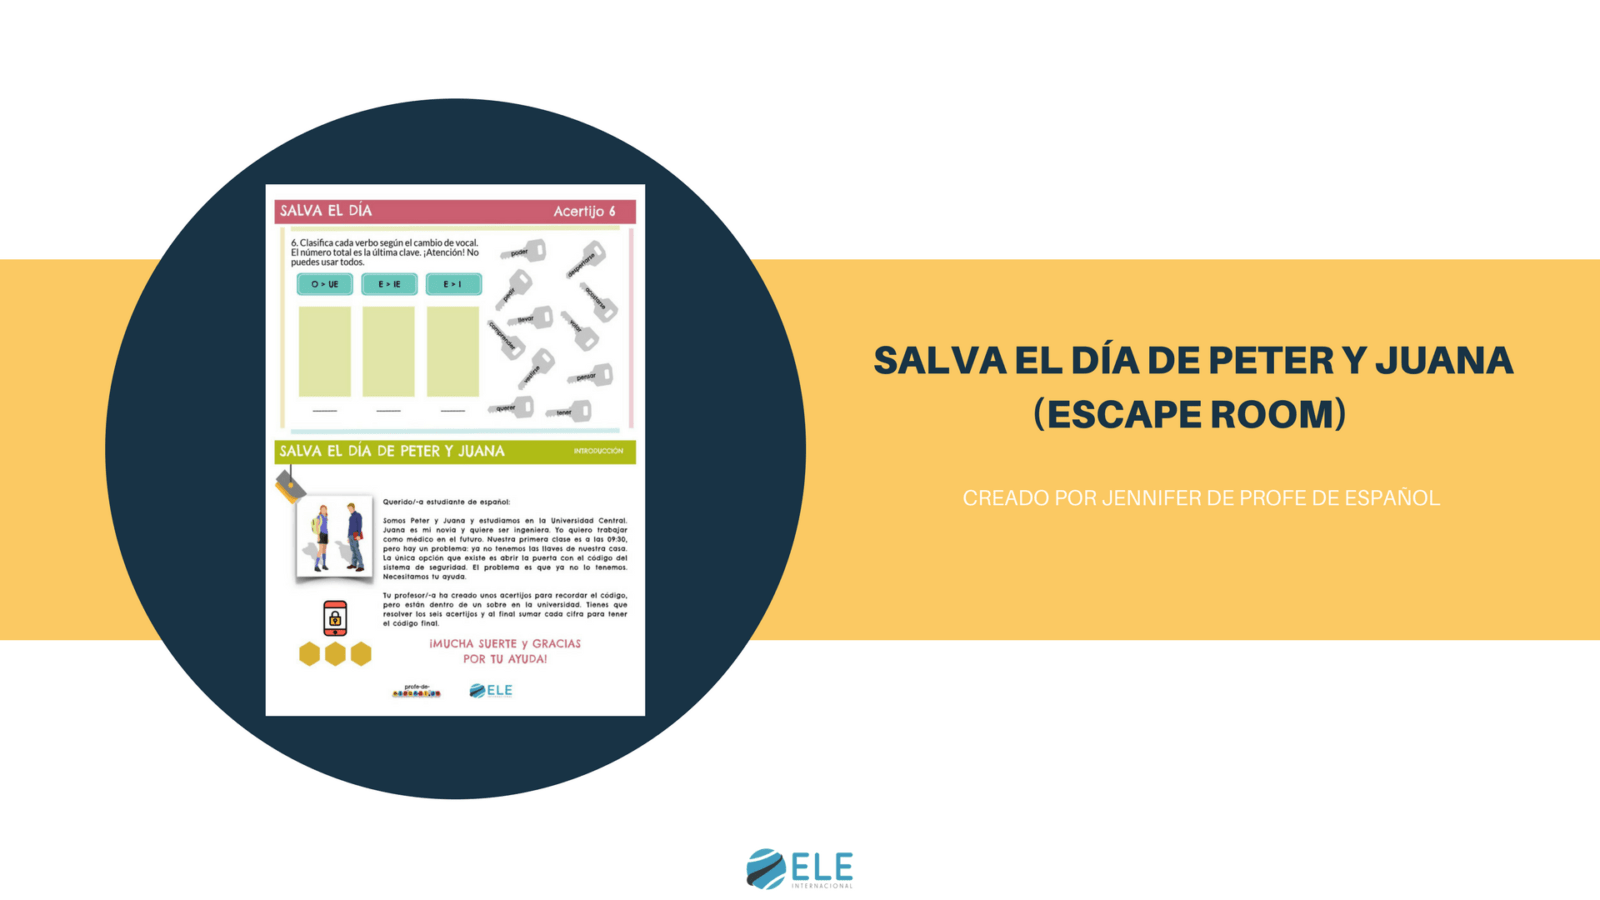 Juega a este divertido y didáctico escape room en clase de ELE. #spanishteacher #activity